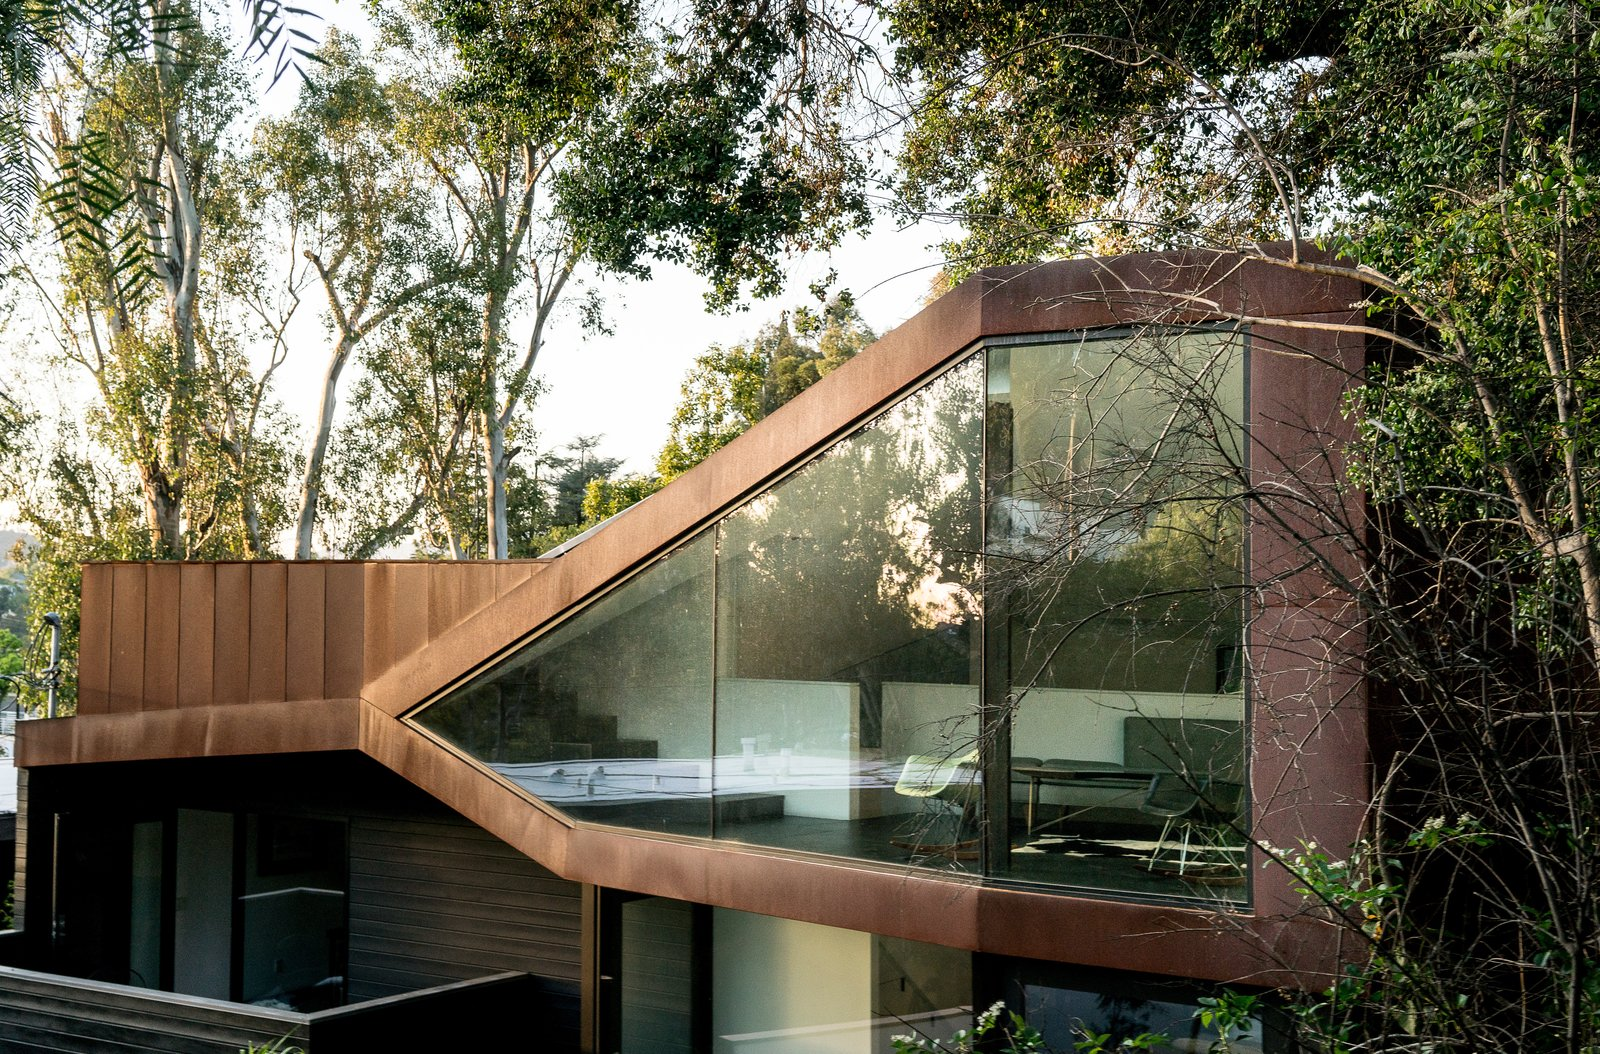 """Resident Richard Kim, who works as the head of design at electric car company Faraday Future, tested his know-how with the creation of his own Los Angeles home, a curvilinear structure clad in Cor-Ten steel and black-stained cedar. """"This house is different,"""" says Richard. """"It's as much a sculpture as it is a place to live."""""""